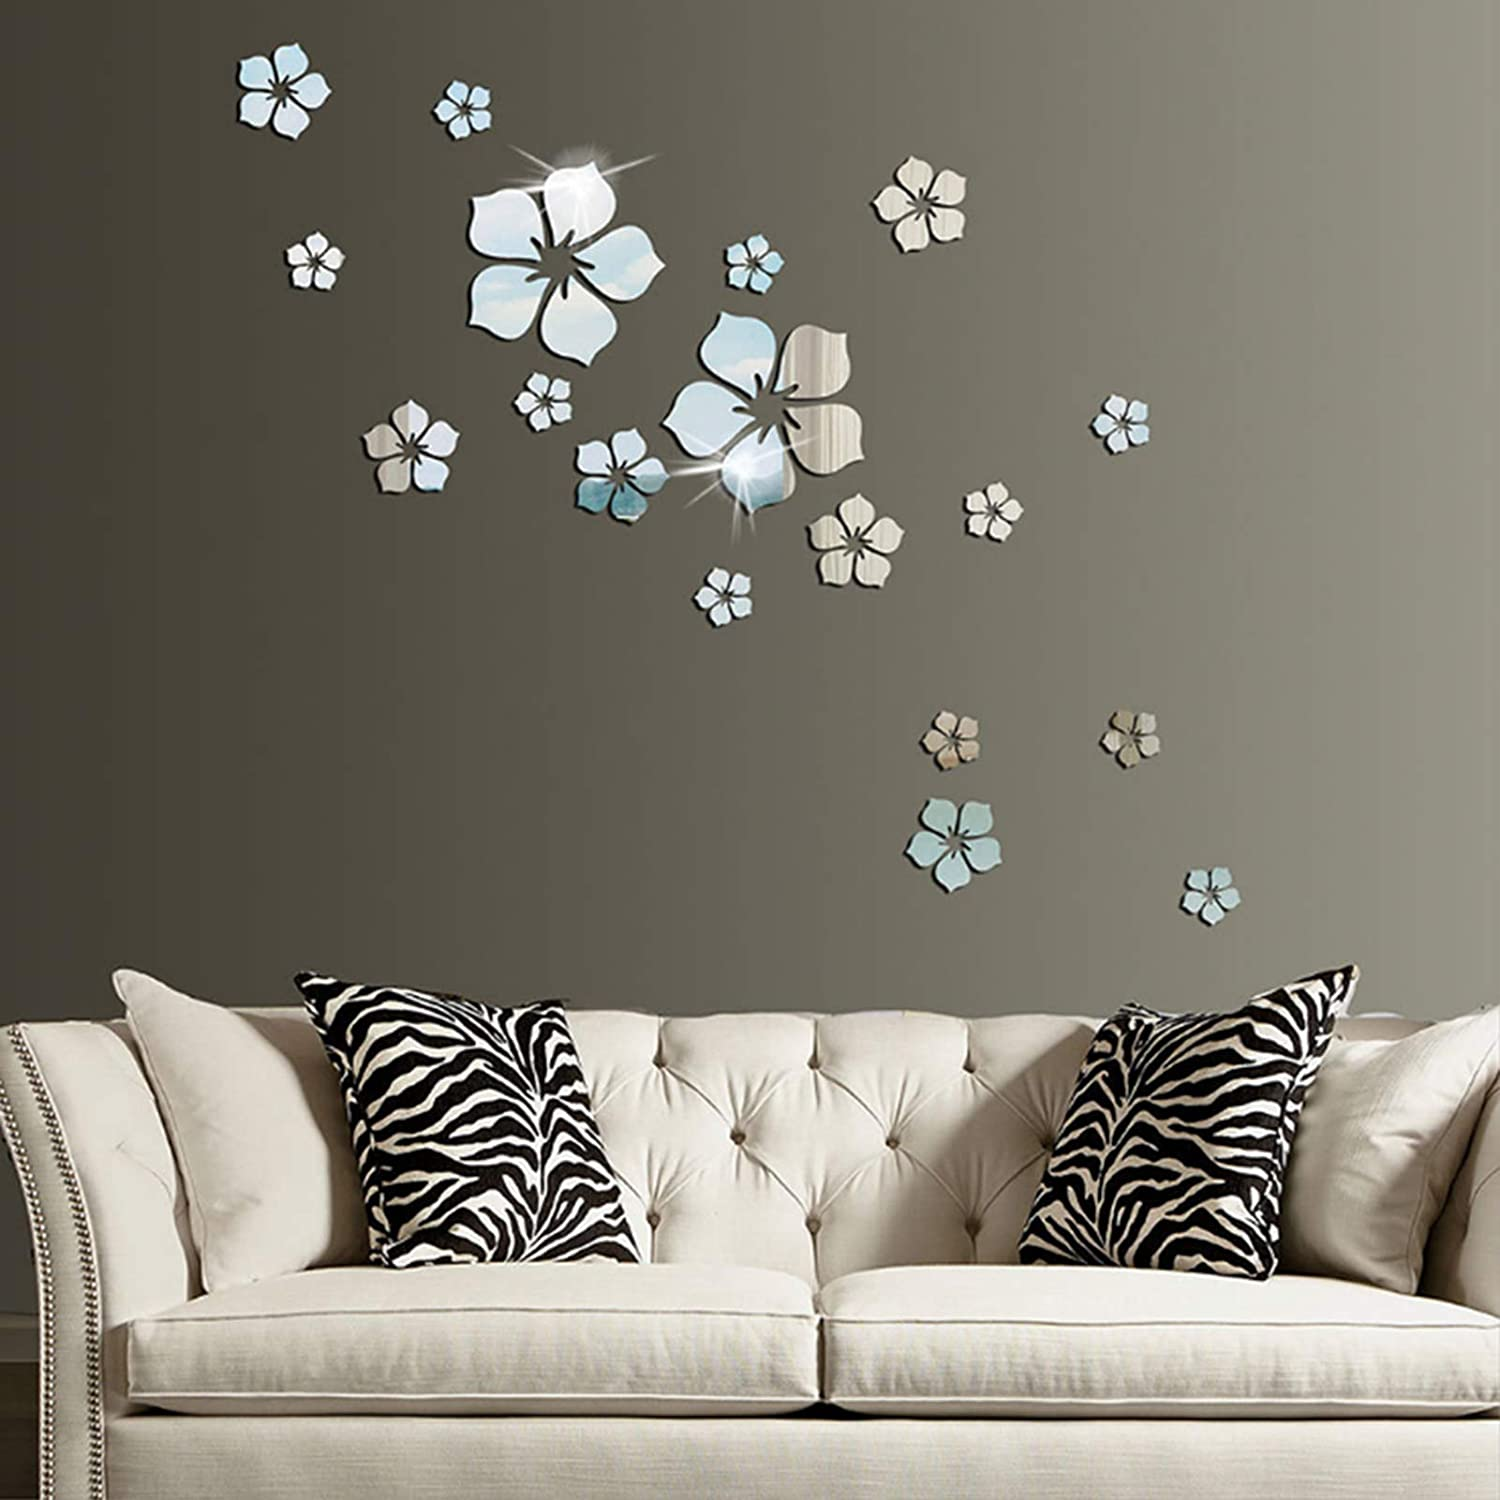 18pcs Acrylic Mirror Wall Sticker Decal for Home Living Room Bedroom Decor 3D Flower DIY Wall Decoration Silver